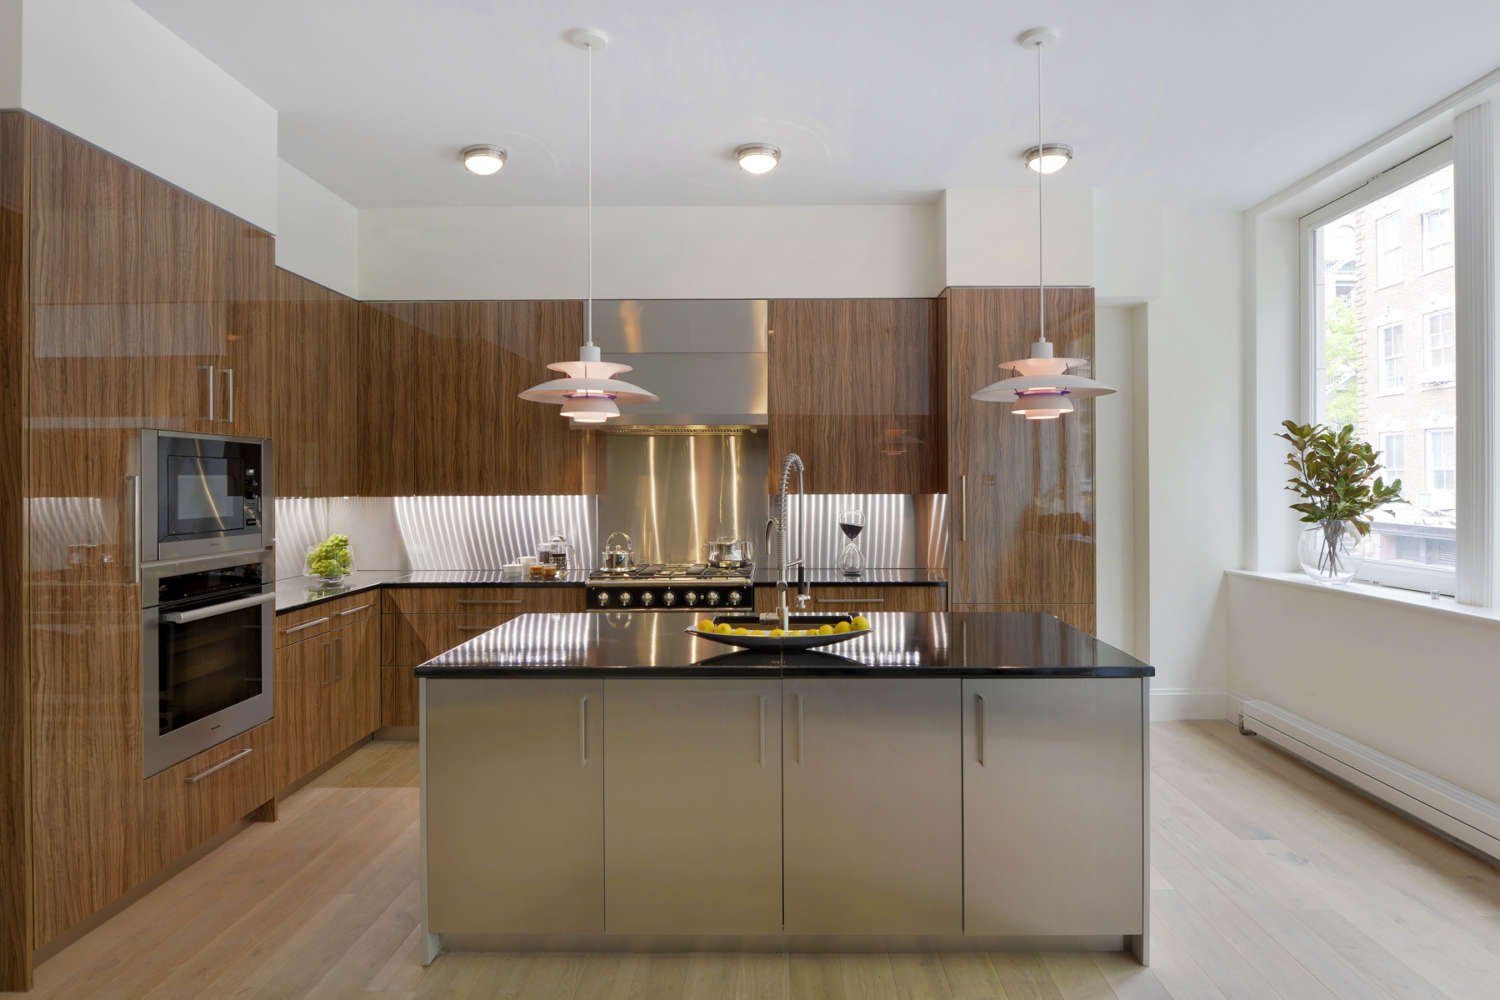 NYC L-shaped loft kitchen features flat panel, frameless fully custom Artcraft cabinetry in a mix of high gloss olivewood and brushed alumasteel, light oak floording and black granite countertops. Design by Randy O'Kane, CKD, of Bilotta Kitchens.